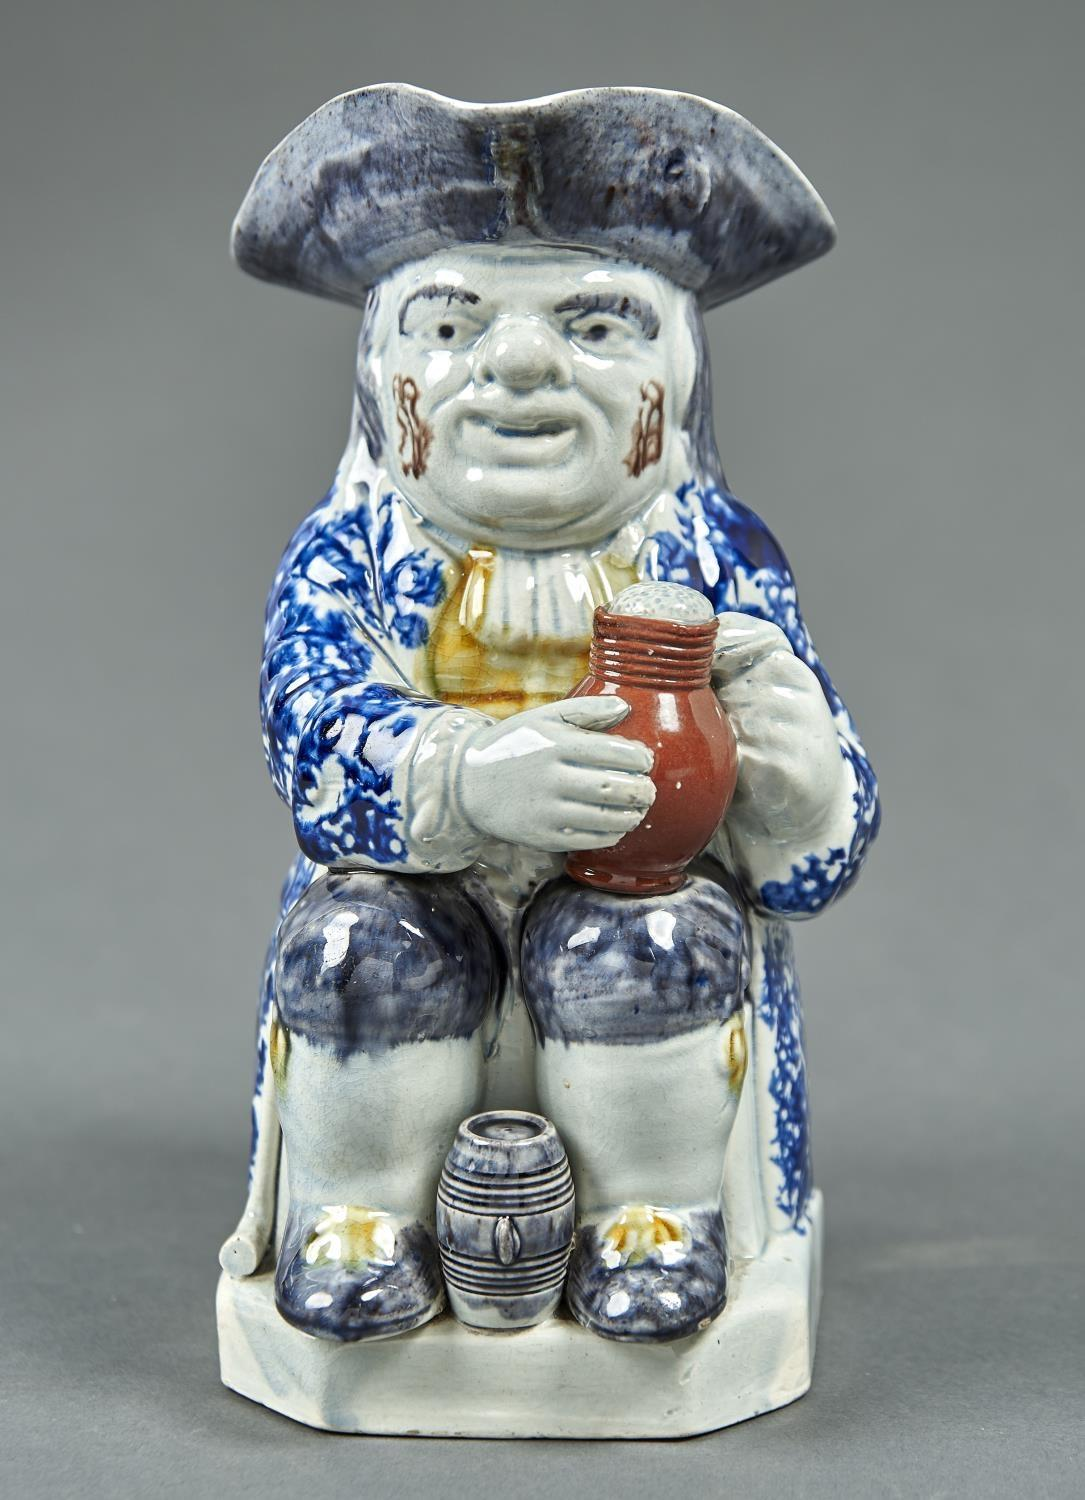 A PRATT WARE TOBY JUG, C1800, THE SEATED FIGURE HOLDING A FOAMING JUG OF ALE, A SMALL BARREL BETWEEN